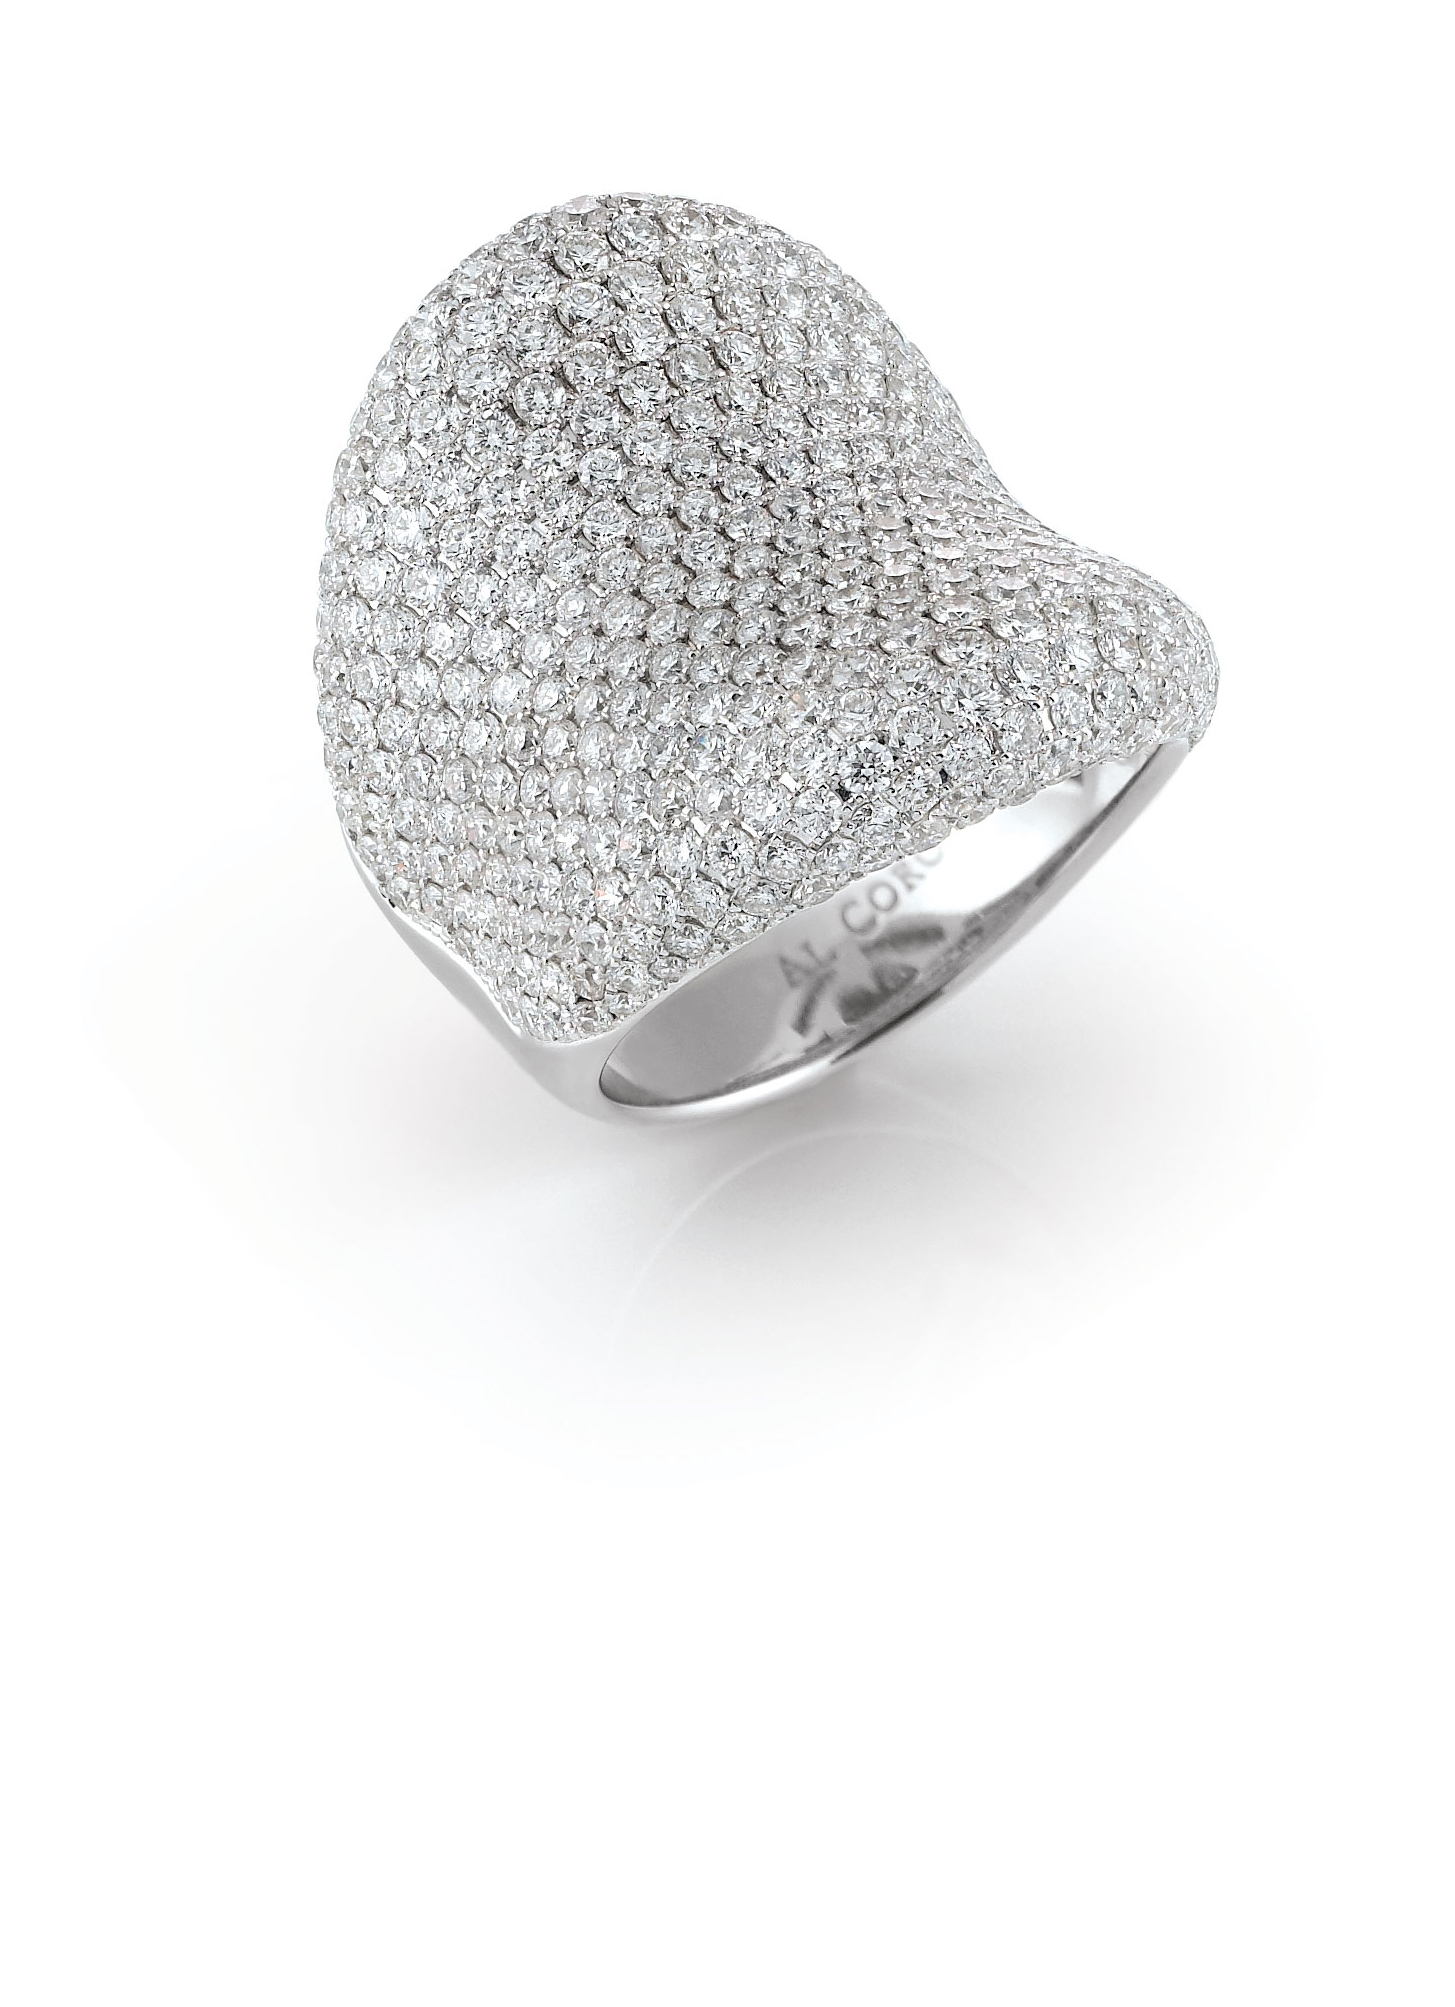 AlCoro-DolceVita-NR8117W-brilliant-ring